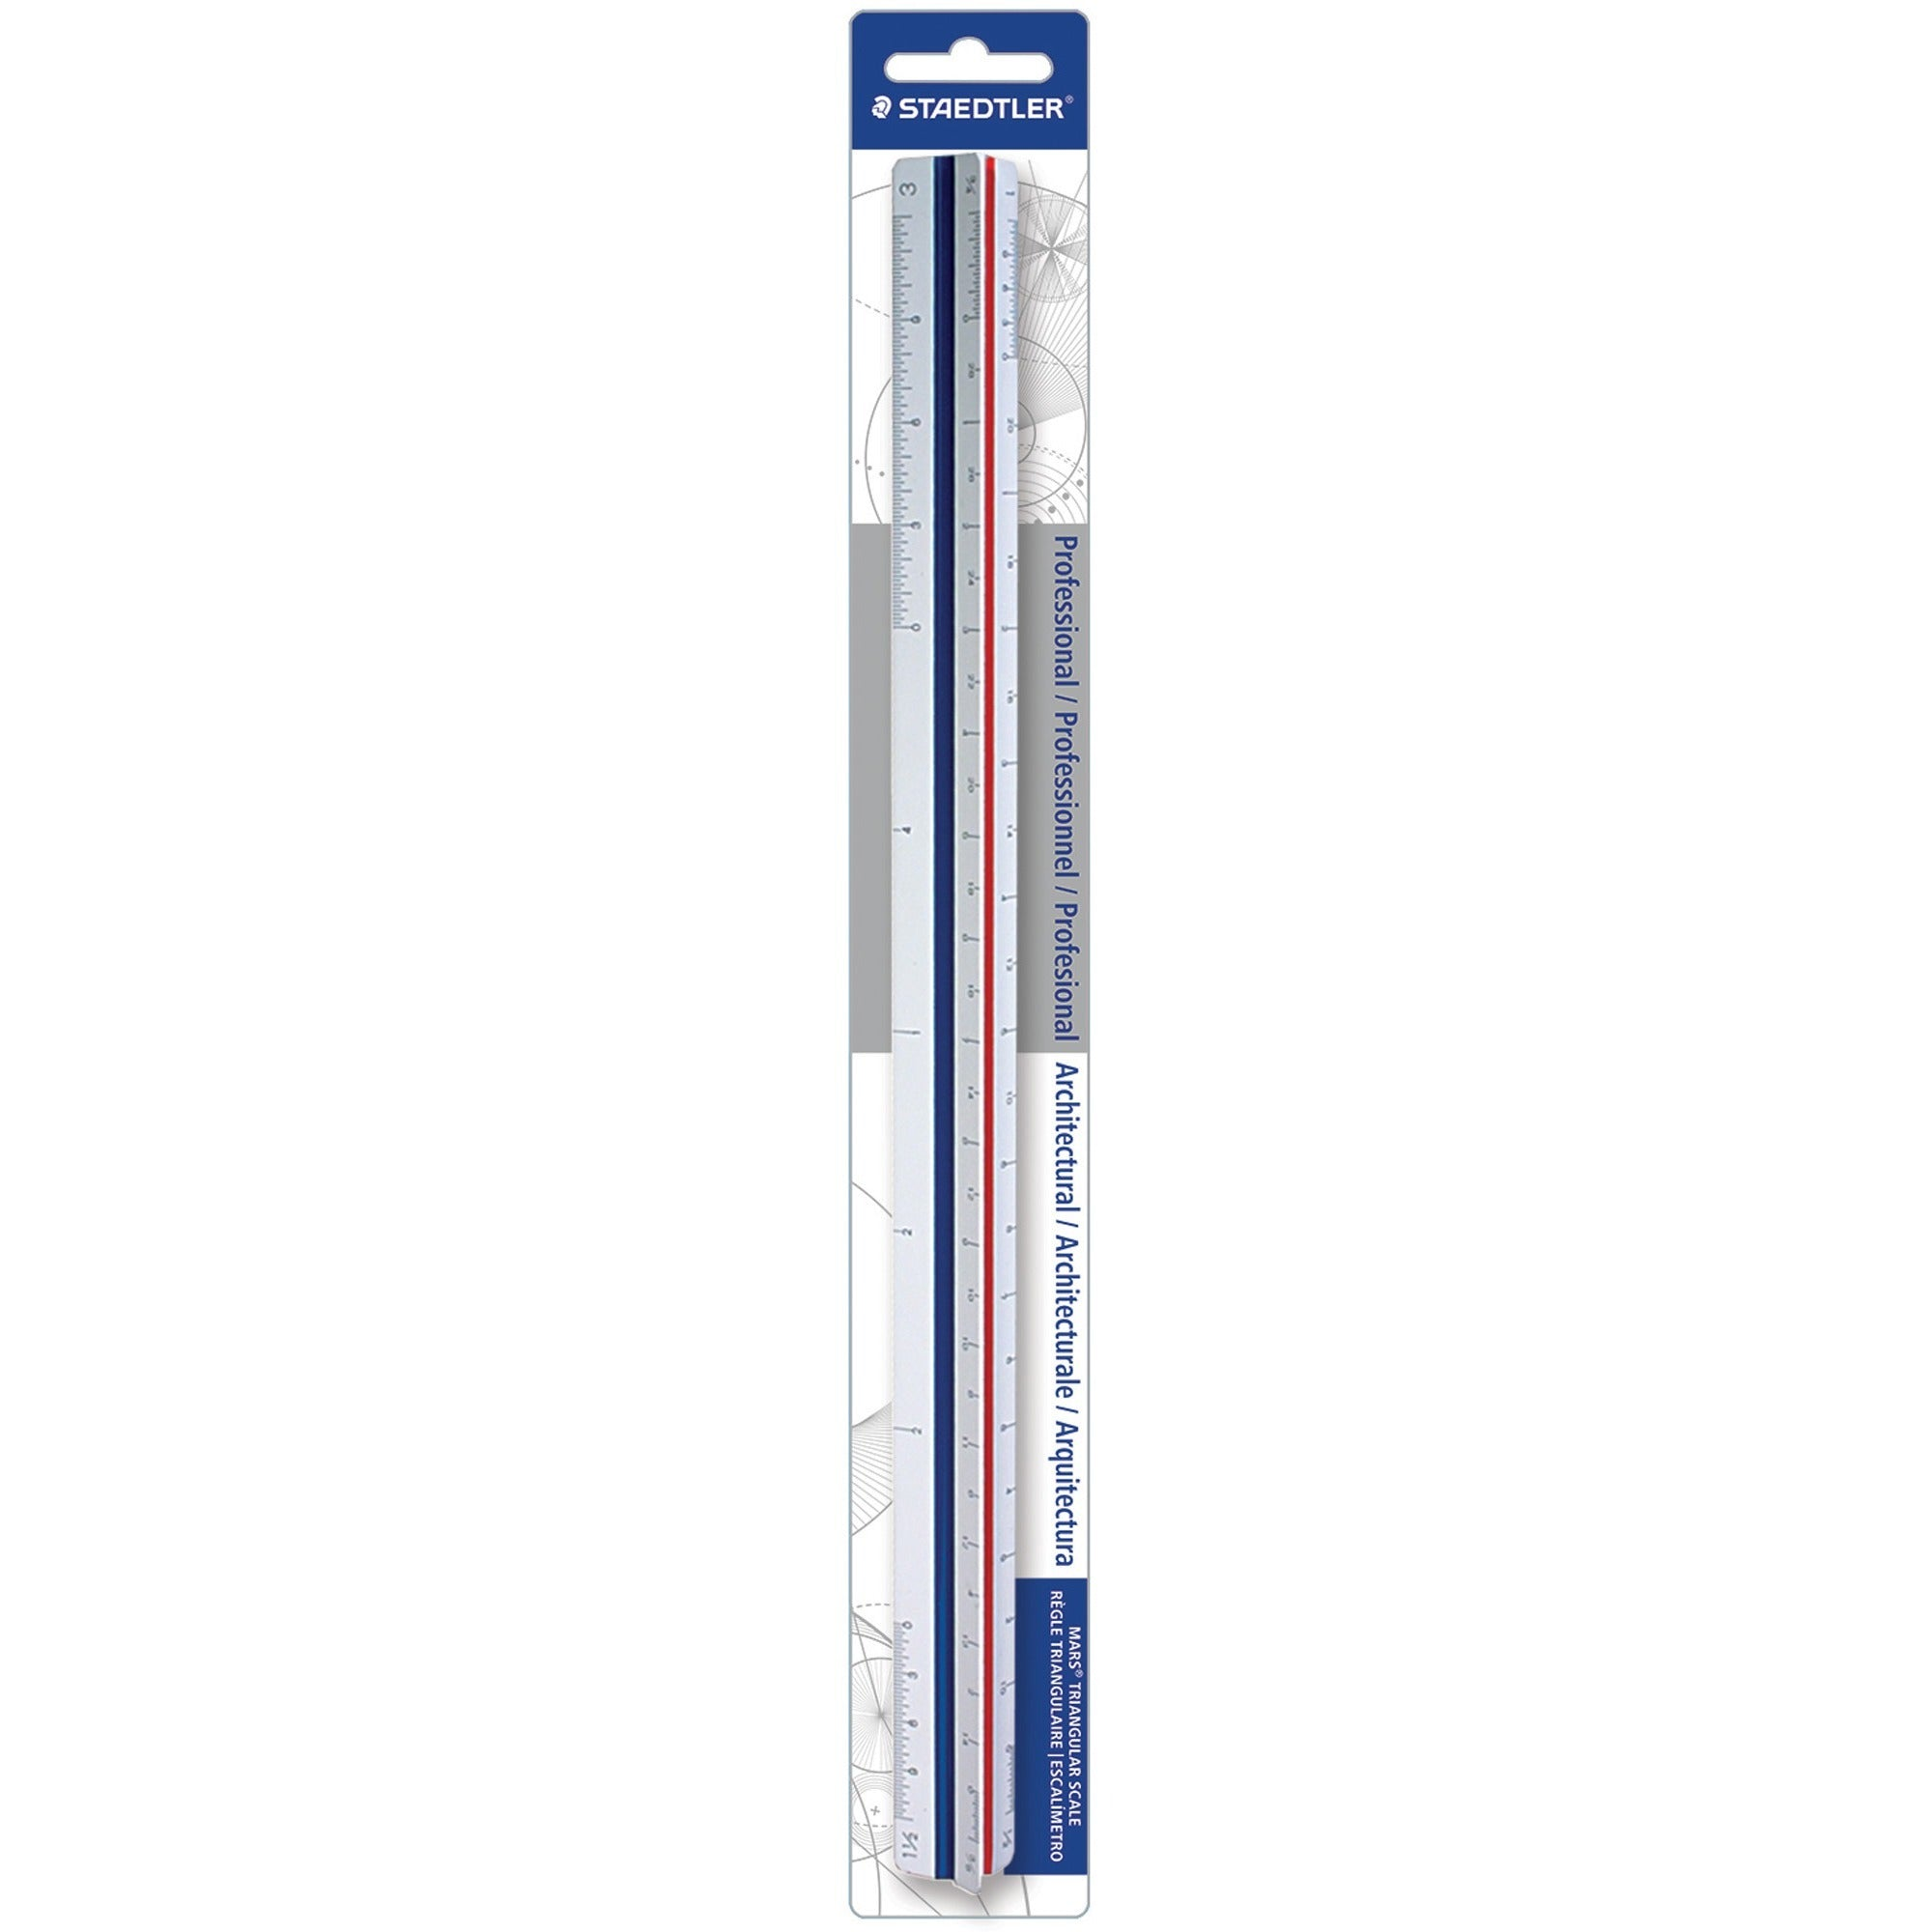 "Staedtler 12"" Architect Triangular ScaleSKU: STD 9871831BK"